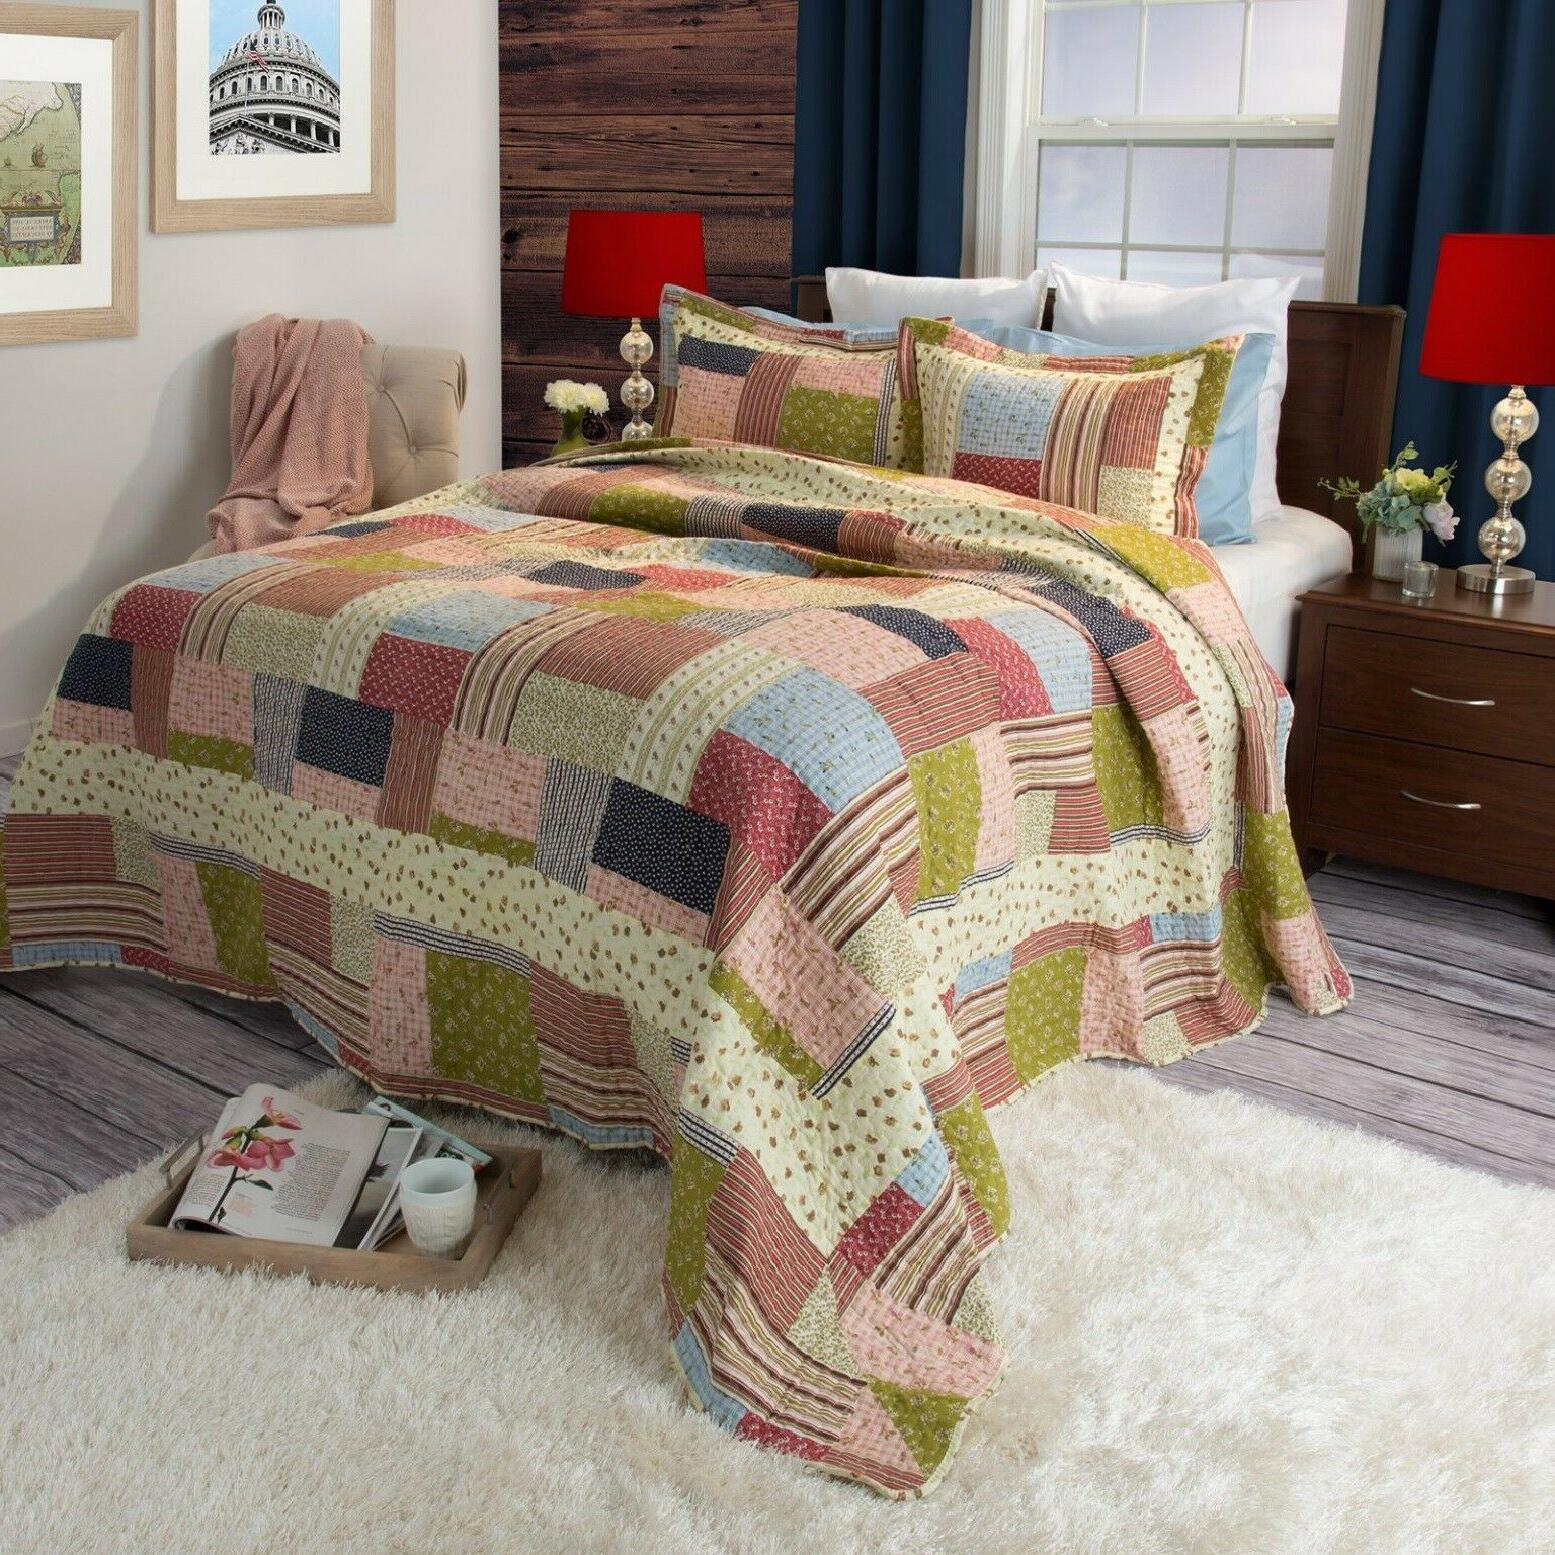 King Bed Cover Comforter Home Bedding